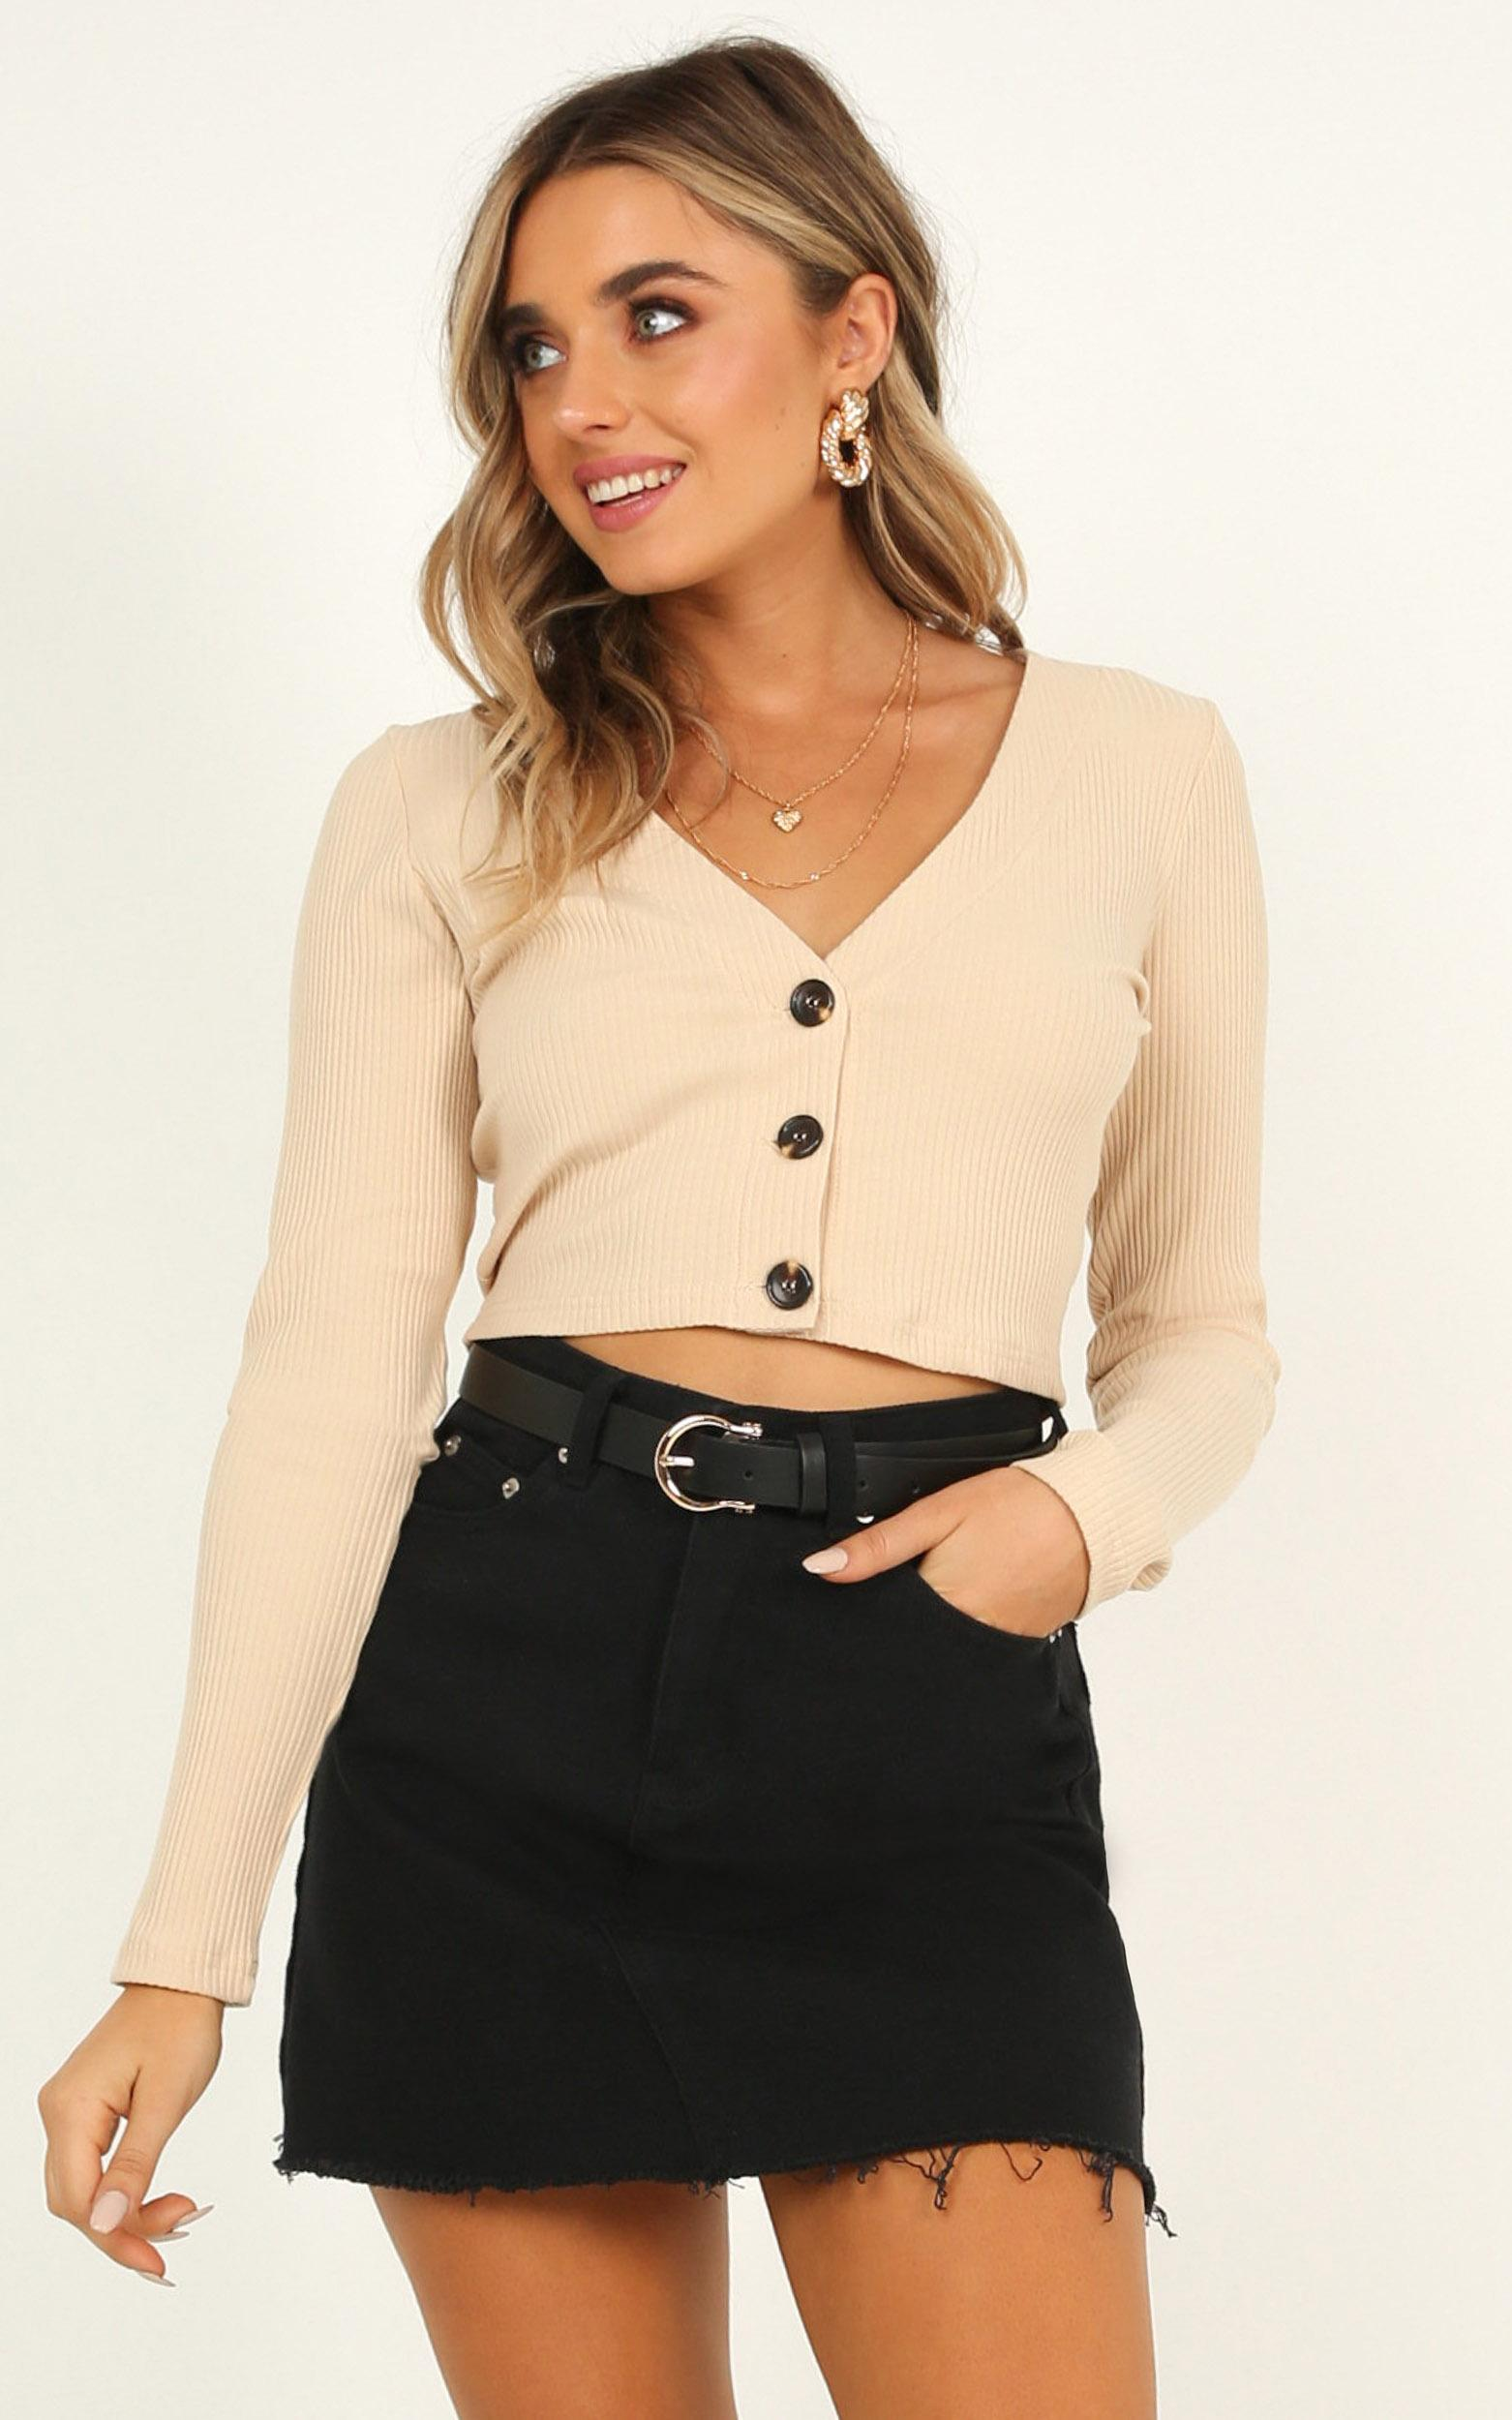 Rhythm Moved Top in oat - 20 (XXXXL), Beige, hi-res image number null